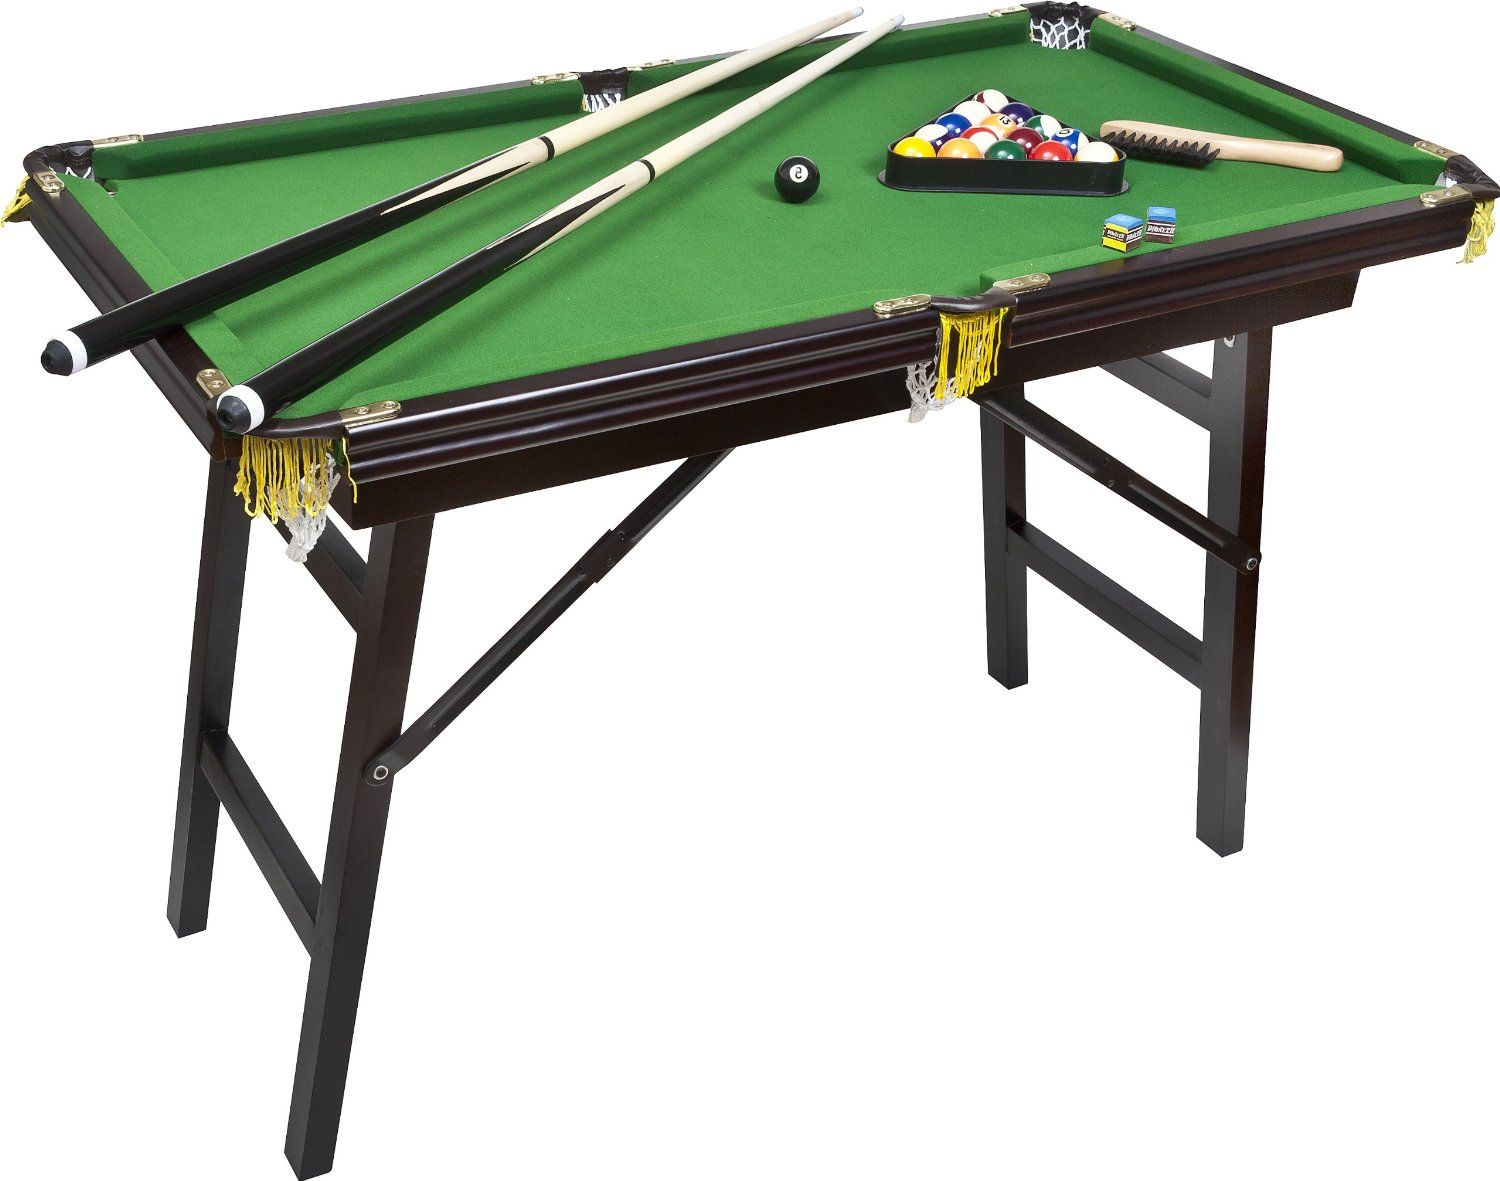 Buy the right portable pool table for your home .For more